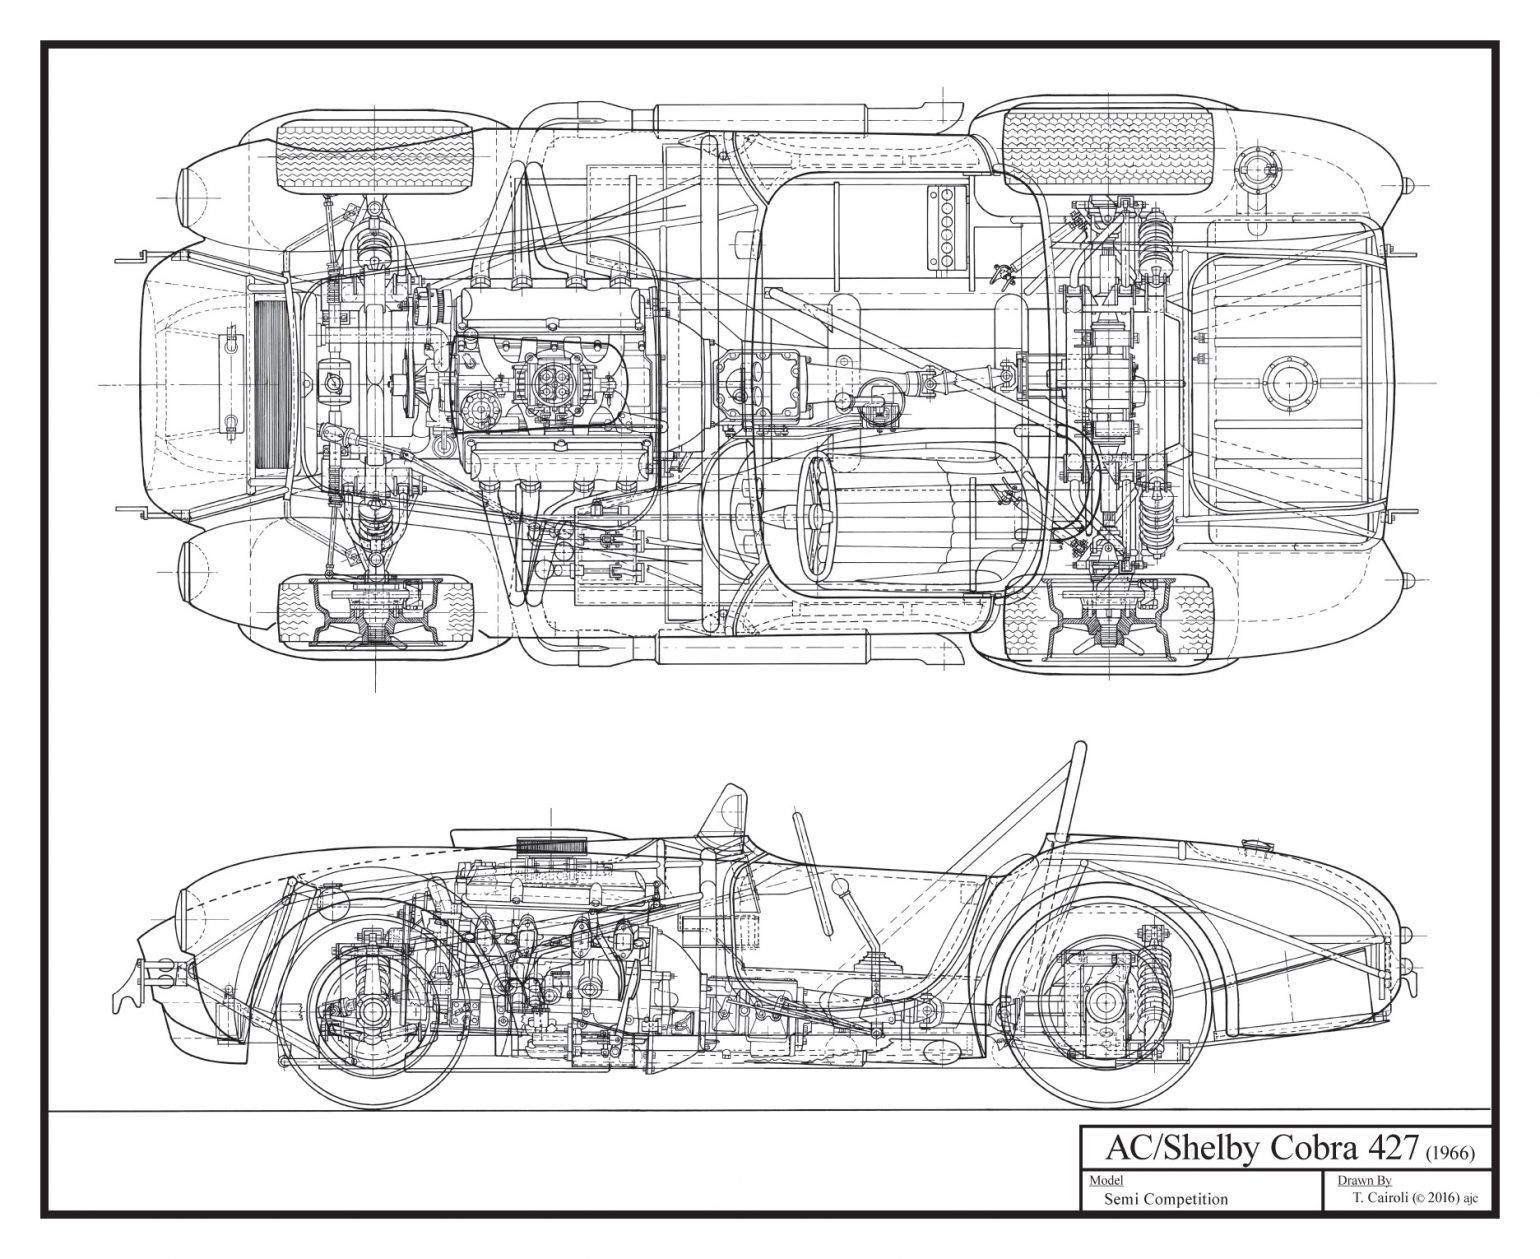 small resolution of tony cairoli has completed his 1966 shelby cobra 427 schematic all hand